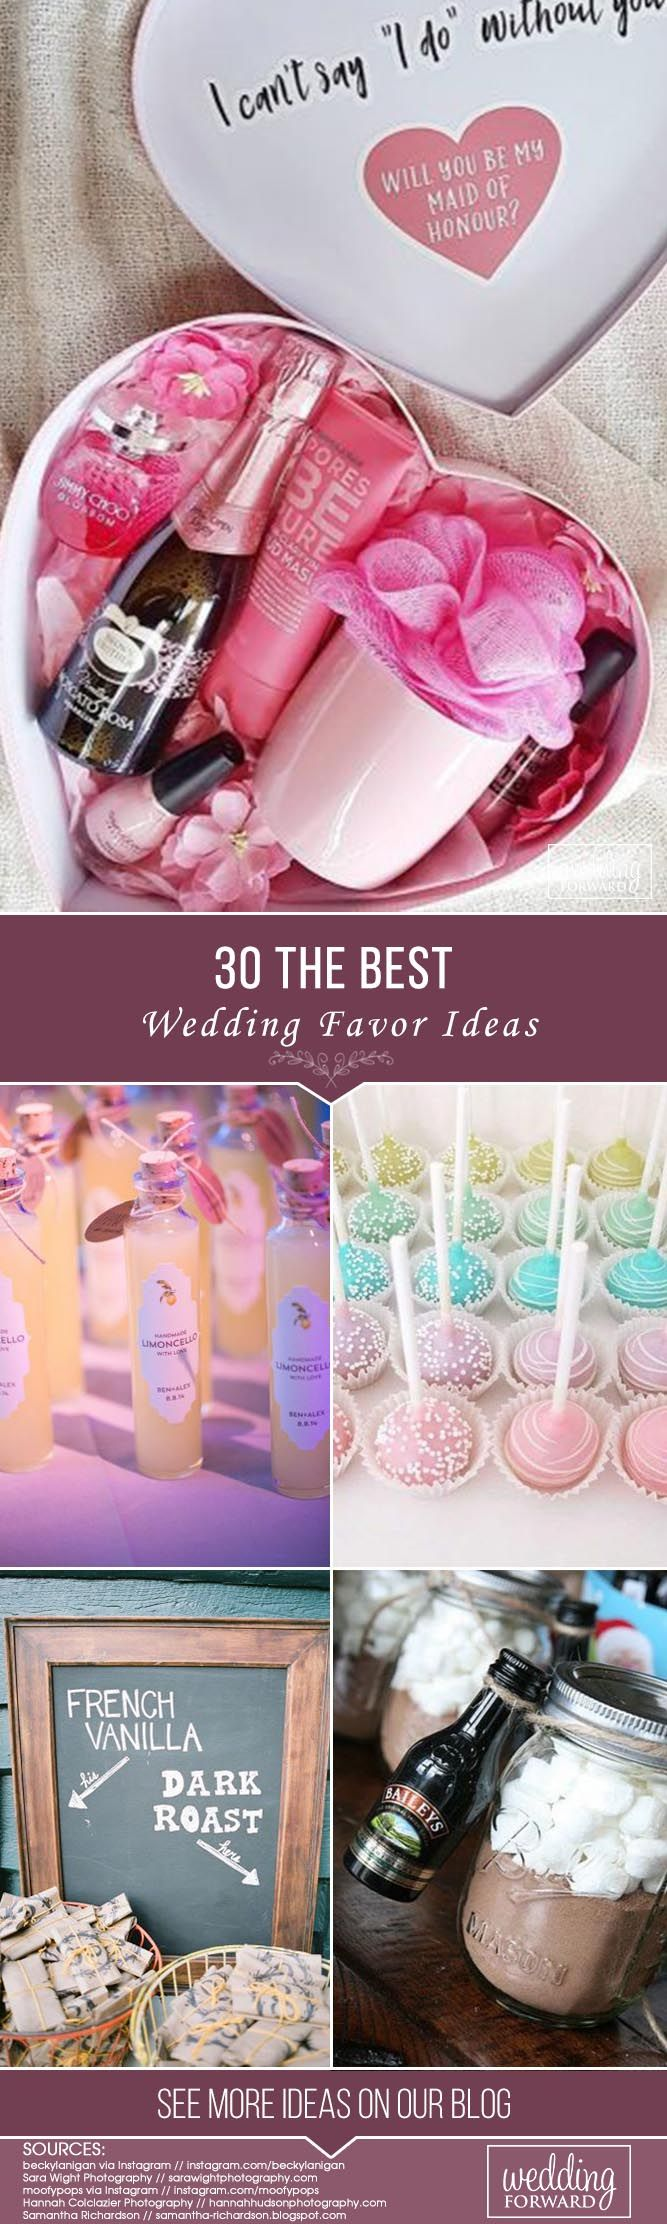 145 best Wedding Favors & Gifts images on Pinterest | Bridal shower ...